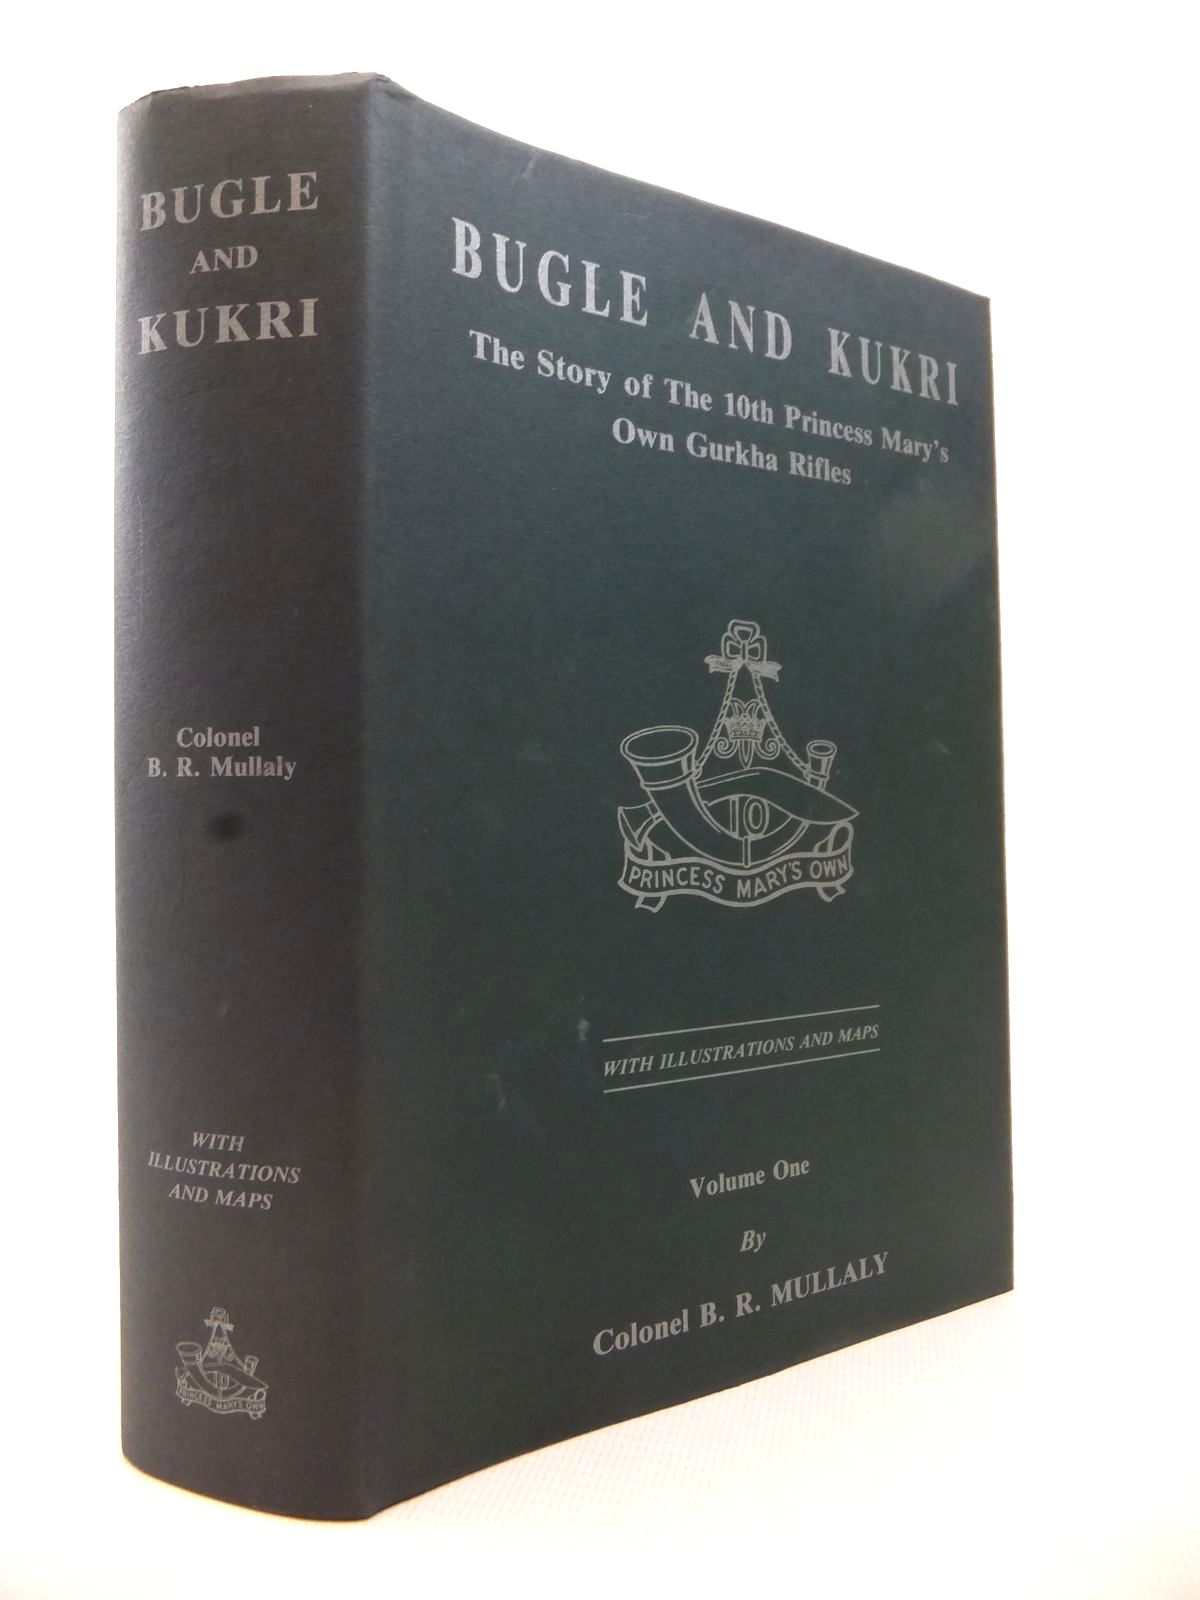 Photo of BUGLE & KUKRI: THE STORY OF THE 10TH PRINCESS MARY'S OWN GURKHA RIFLES VOLUME ONE written by Mullaly, B.R. published by The Naval & Military Press Ltd. (STOCK CODE: 1813953)  for sale by Stella & Rose's Books